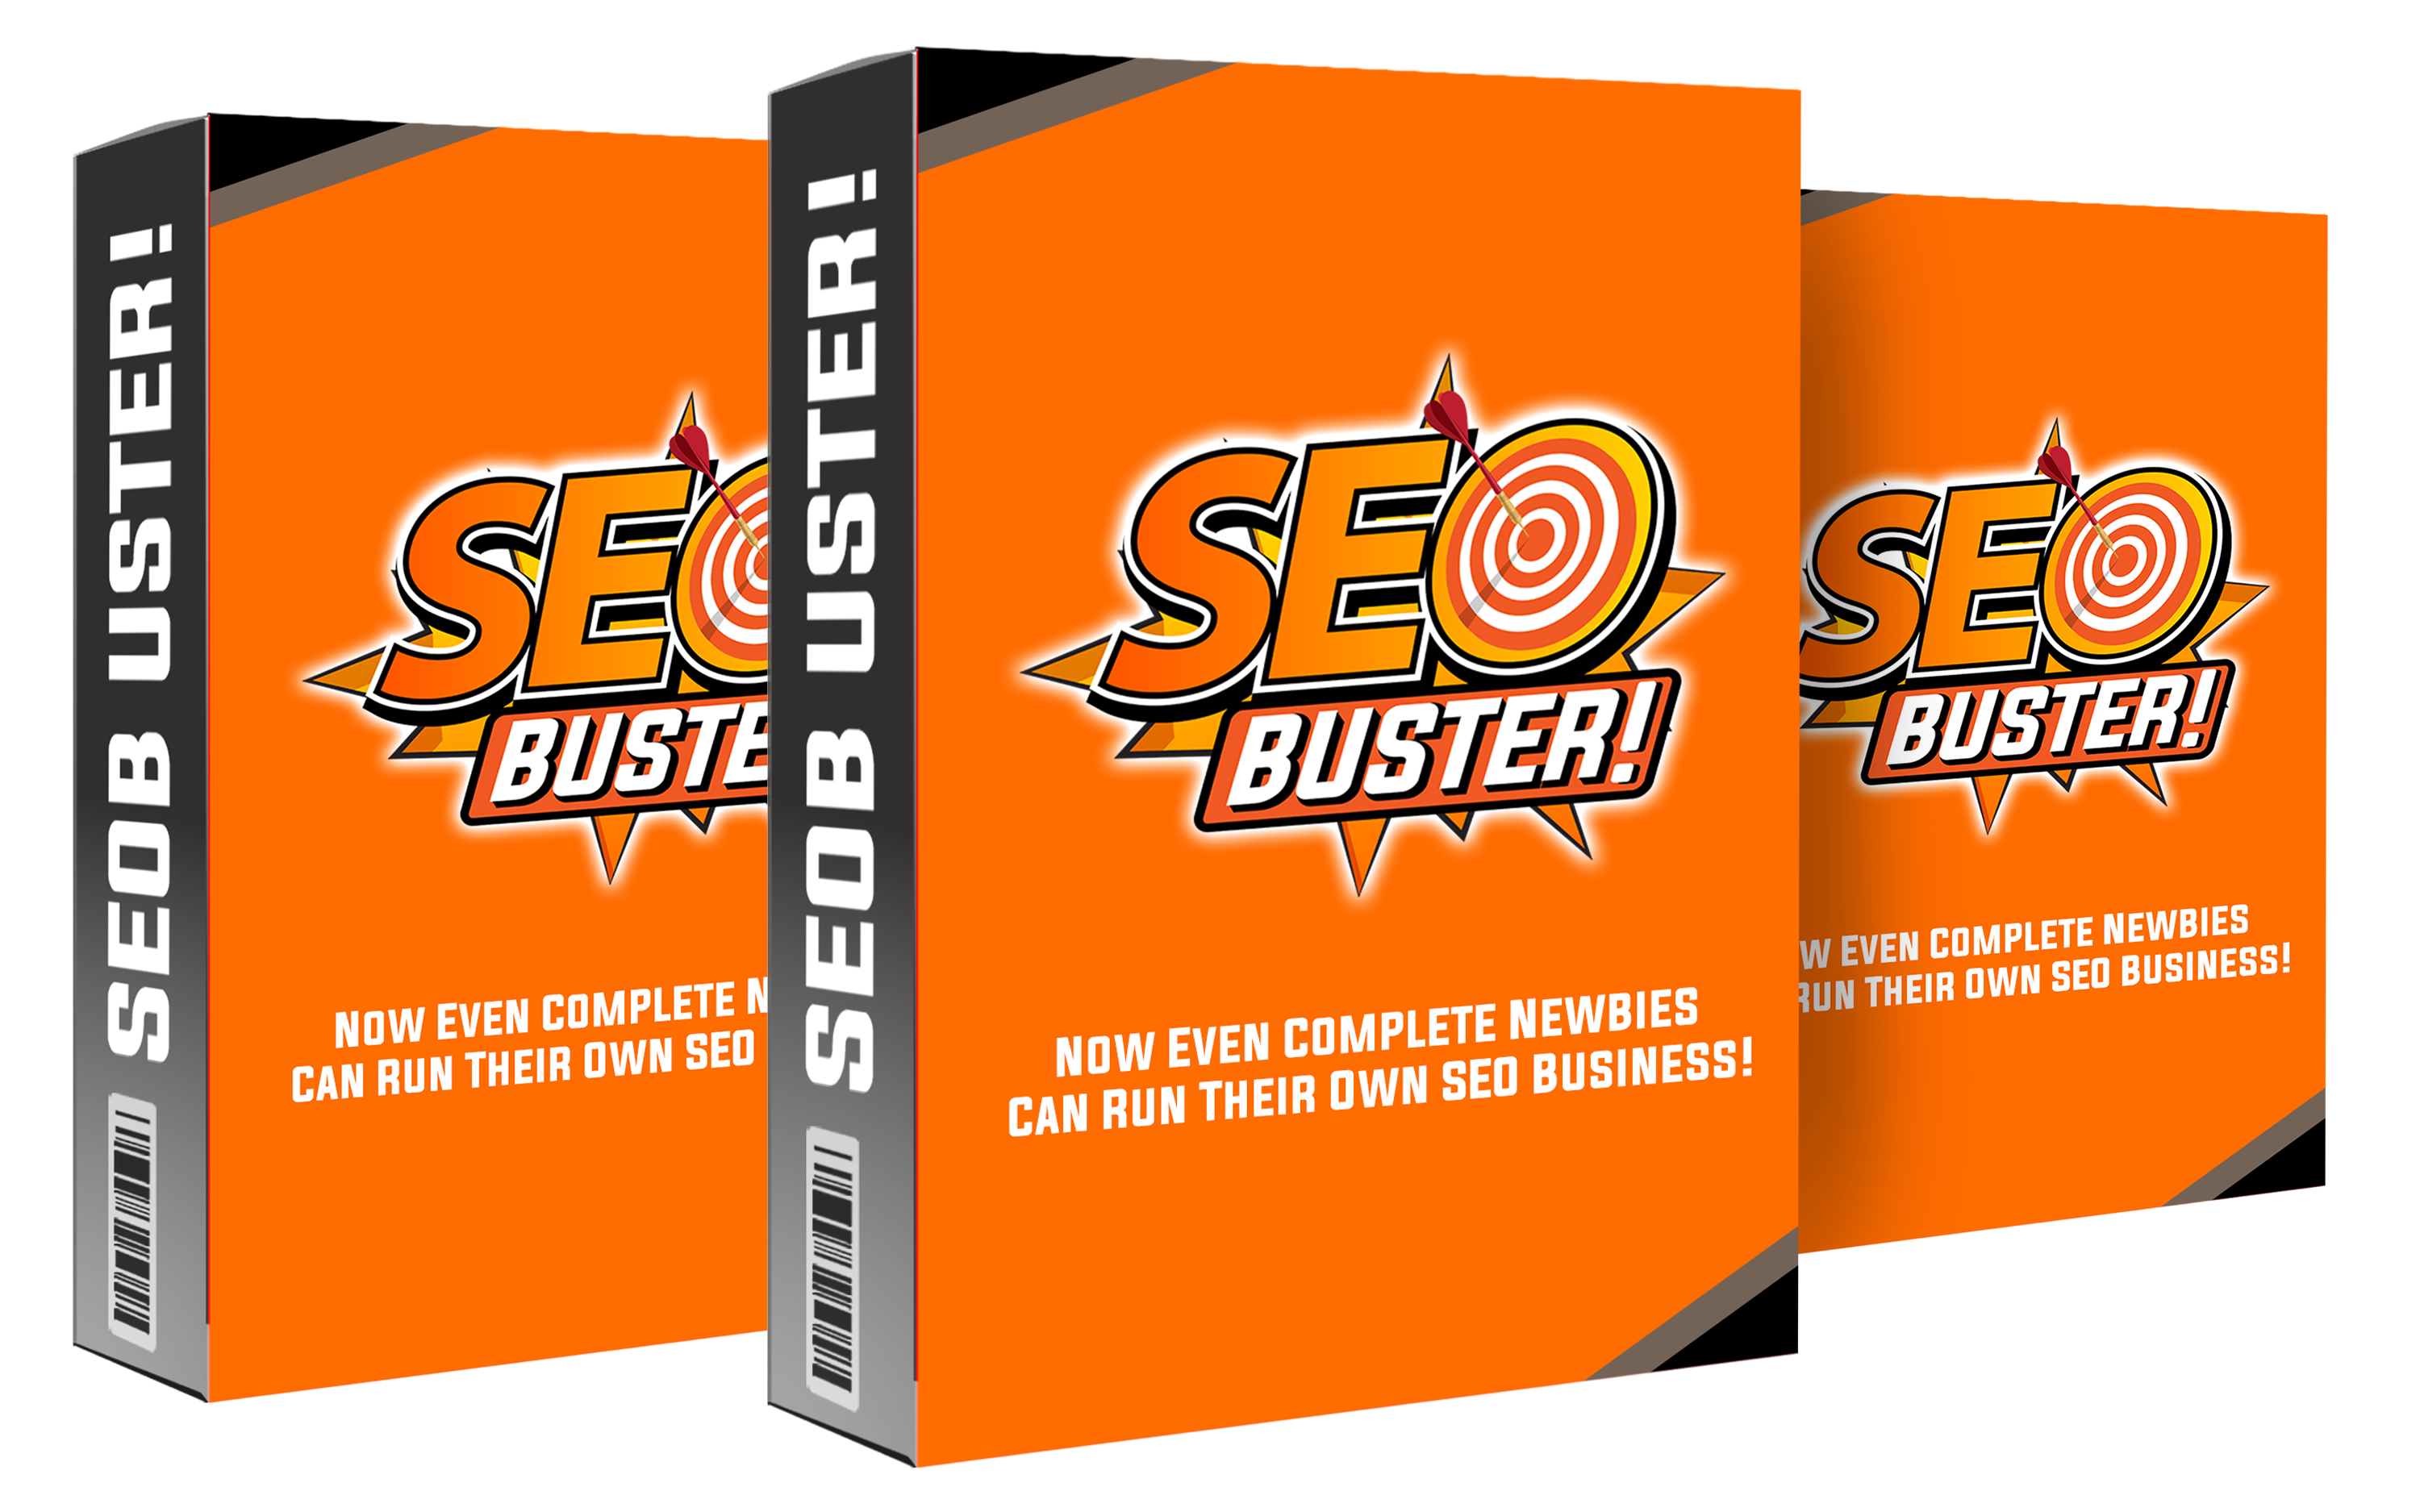 seo buster